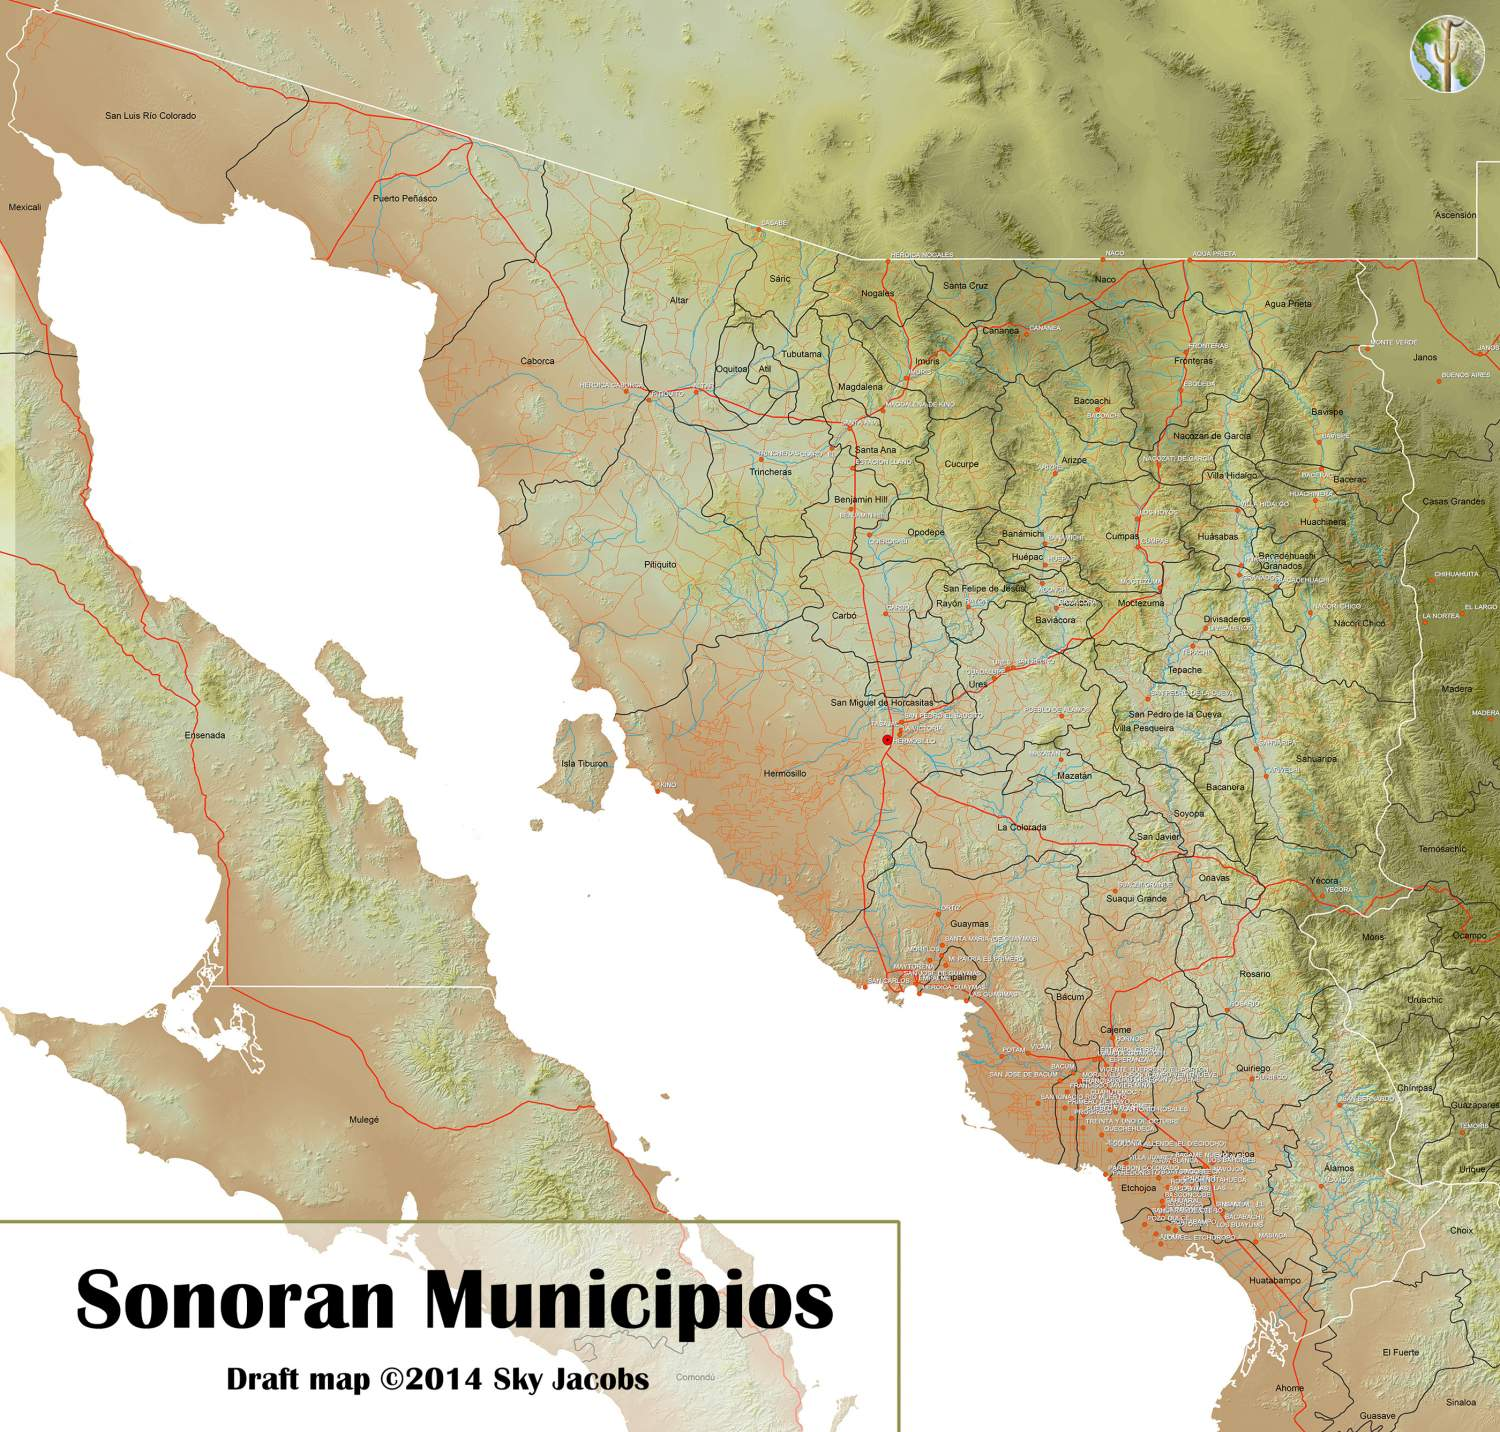 Municipios of Sonora, Mexico